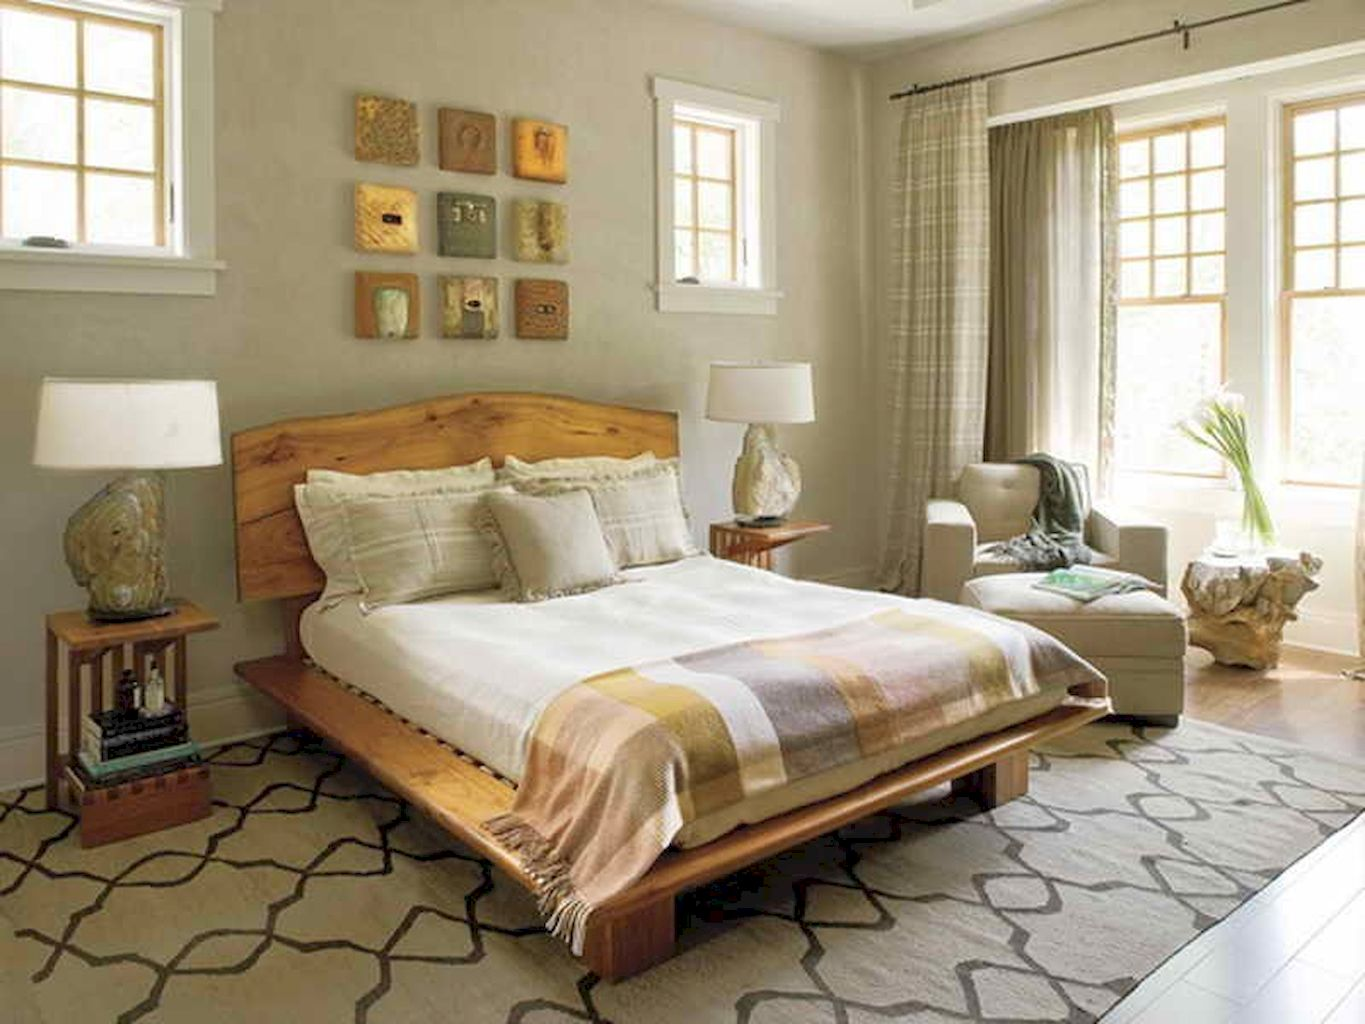 Easy Decor Hacks to Make Stunning Bedroom Design ... on Bedroom Ideas Cheap  id=37575